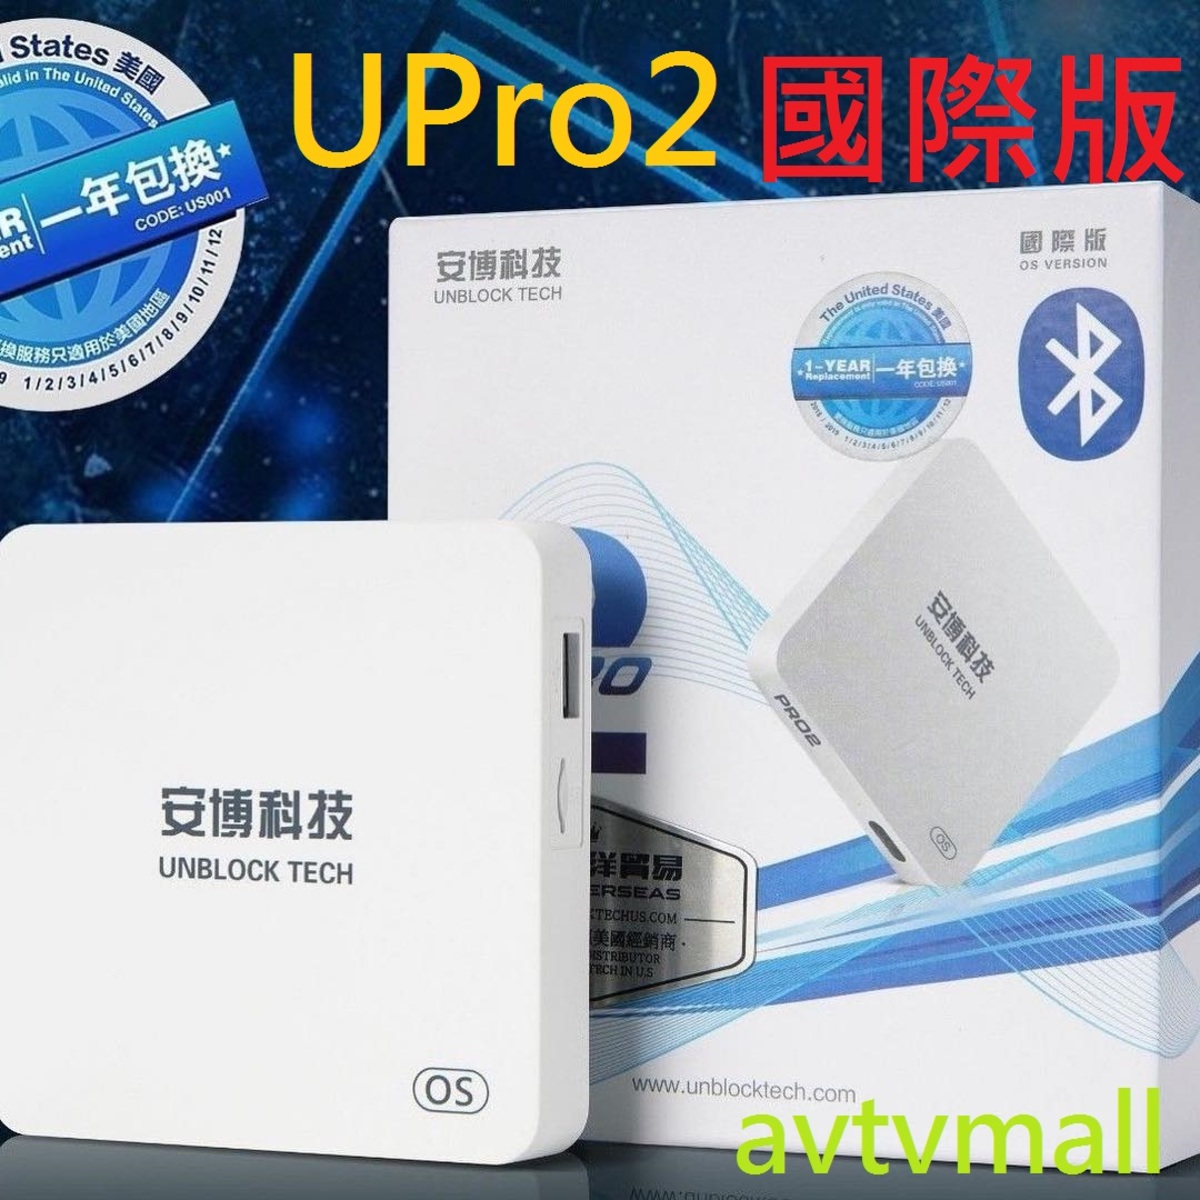 UNBLOCK | Unblock tech UPRO2 i950_16g_os(international